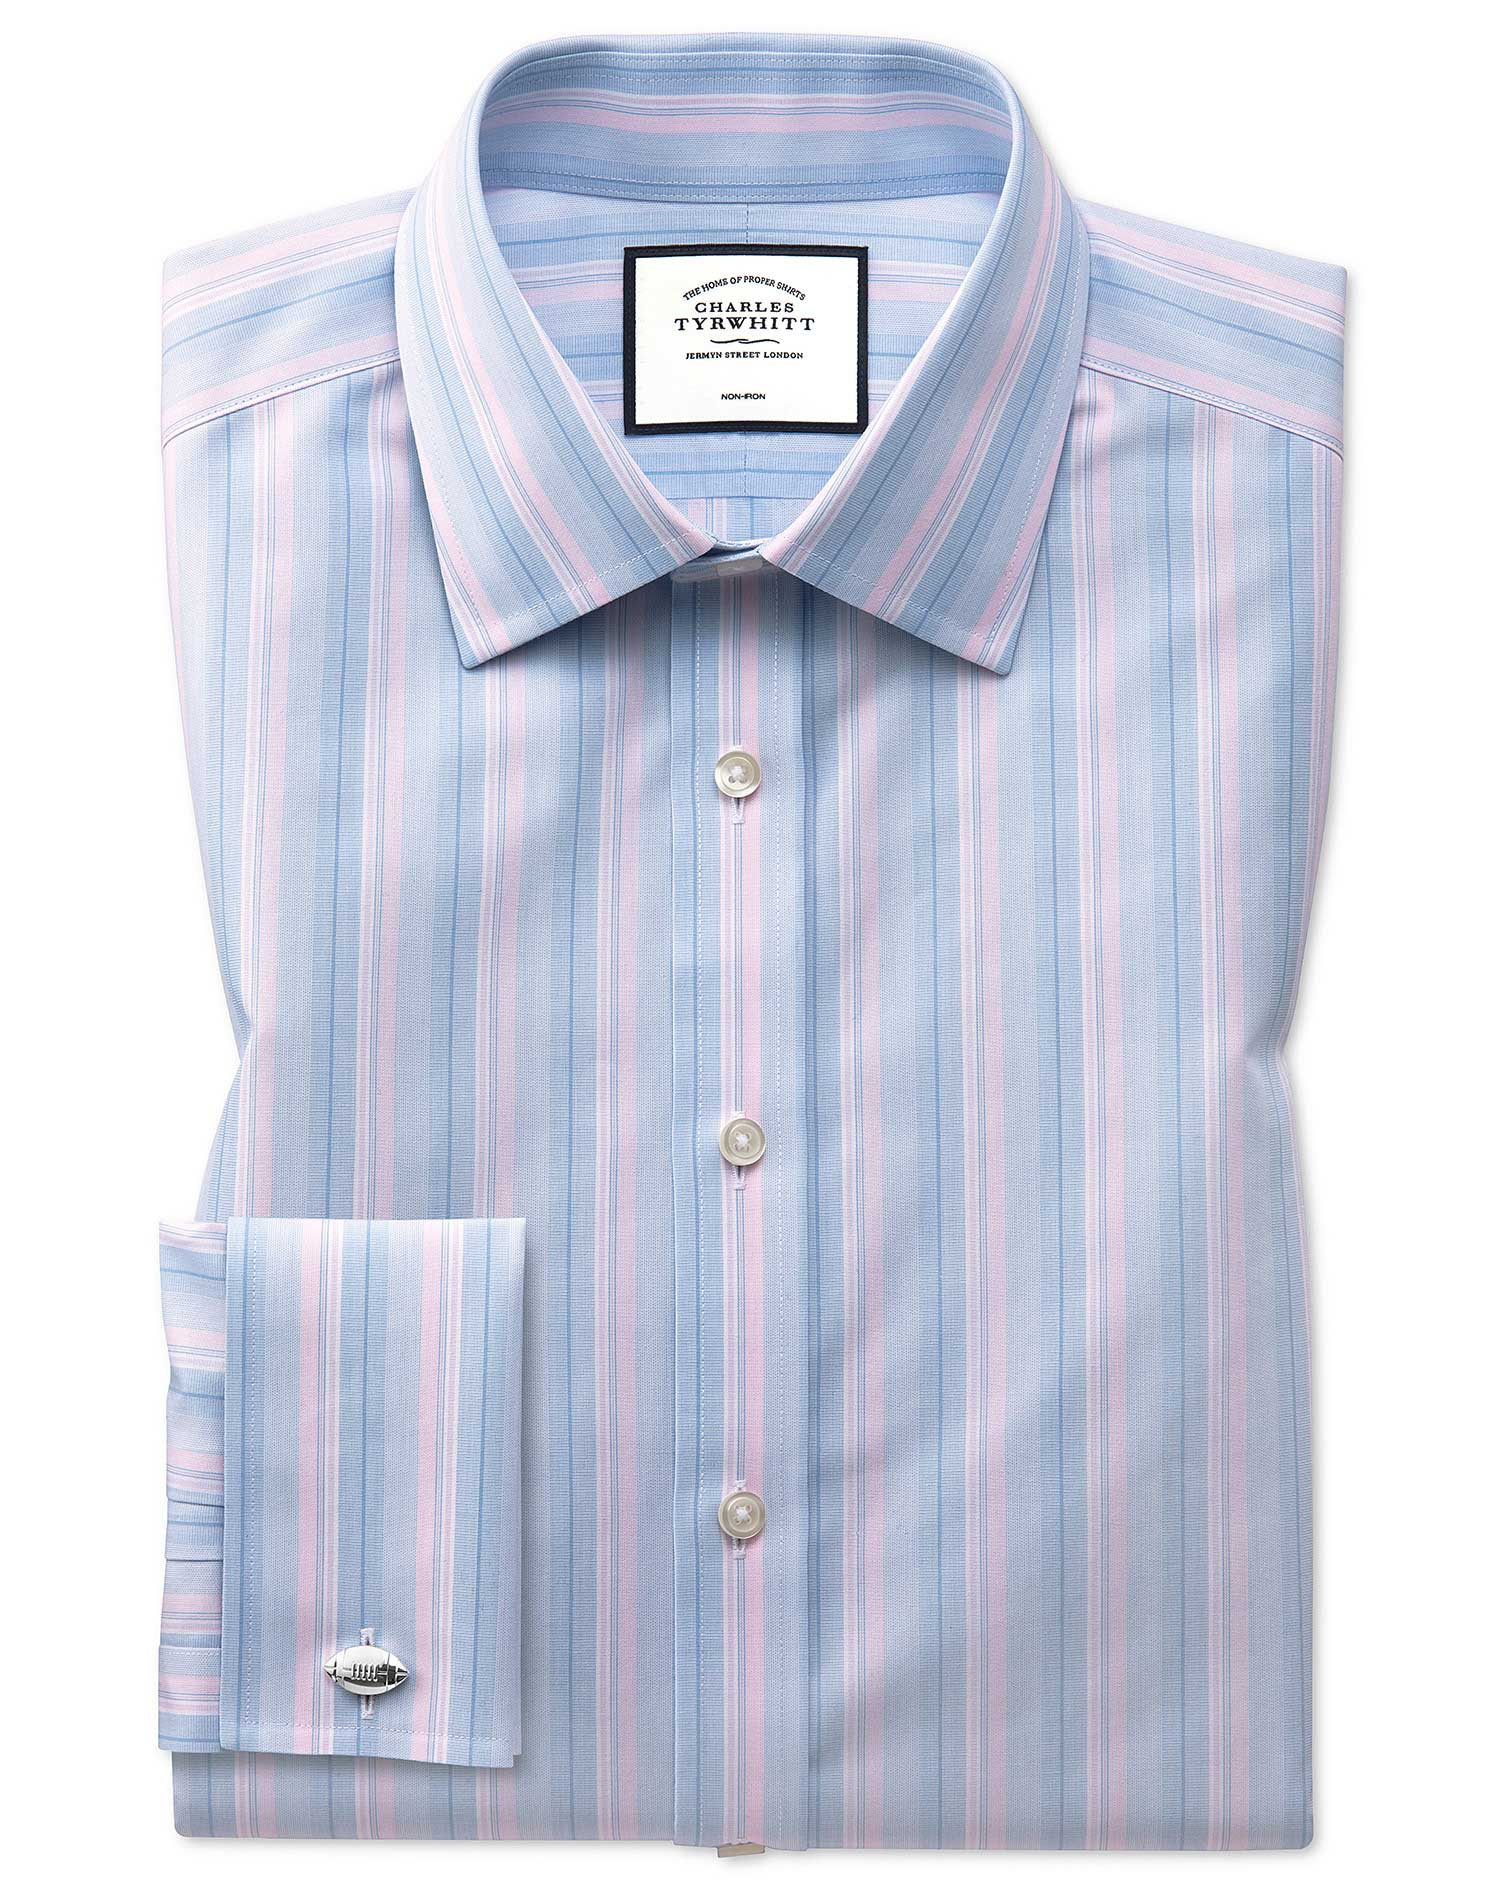 Classic Fit Non-Iron Pink and Blue Multi Stripe Cotton Formal Shirt Single Cuff Size 18/36 by Charle